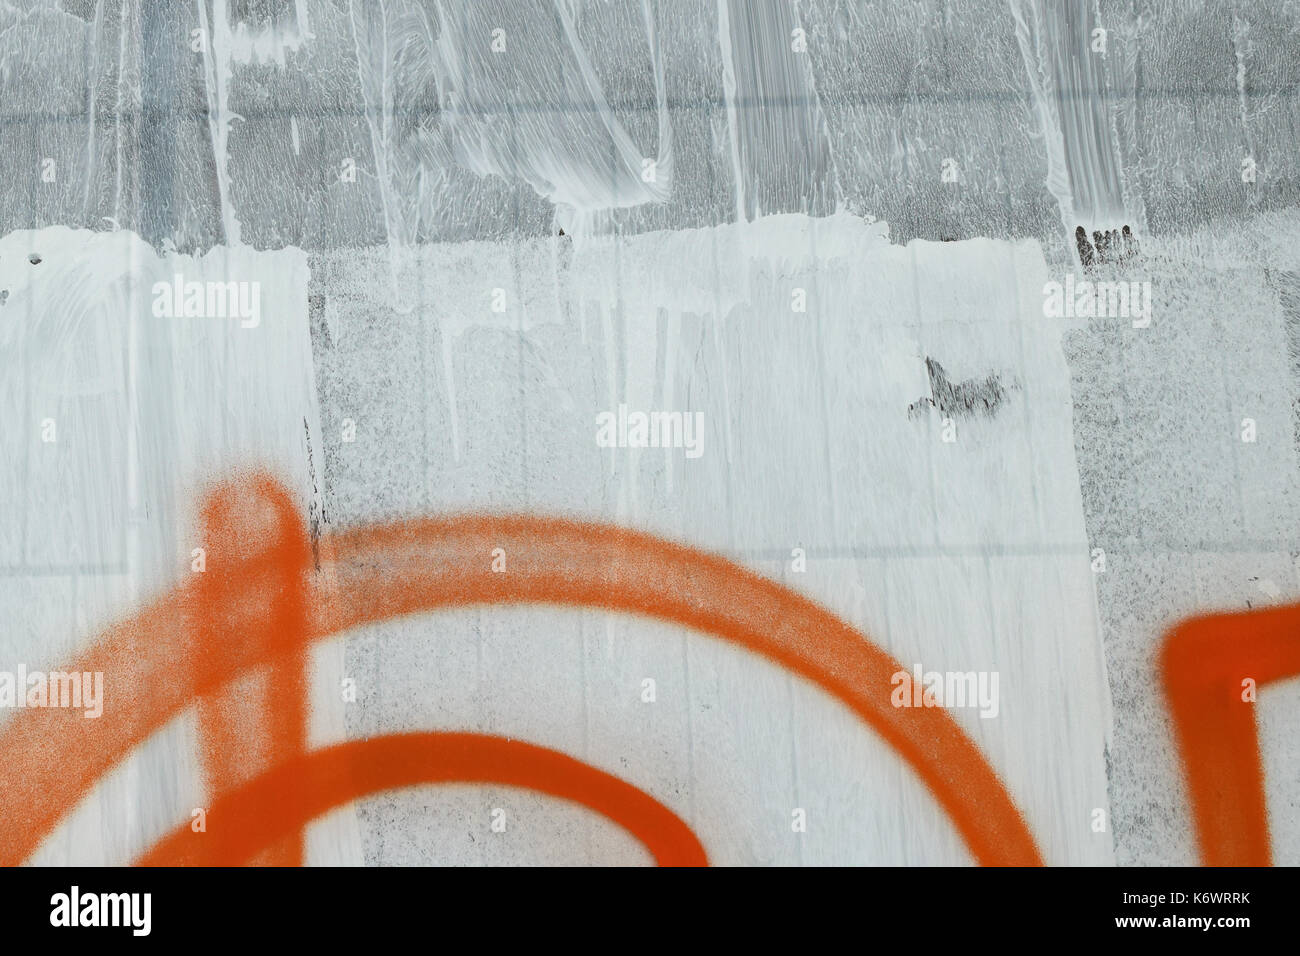 Graffiti spray painted on white stock photos graffiti for Paint for glass surfaces